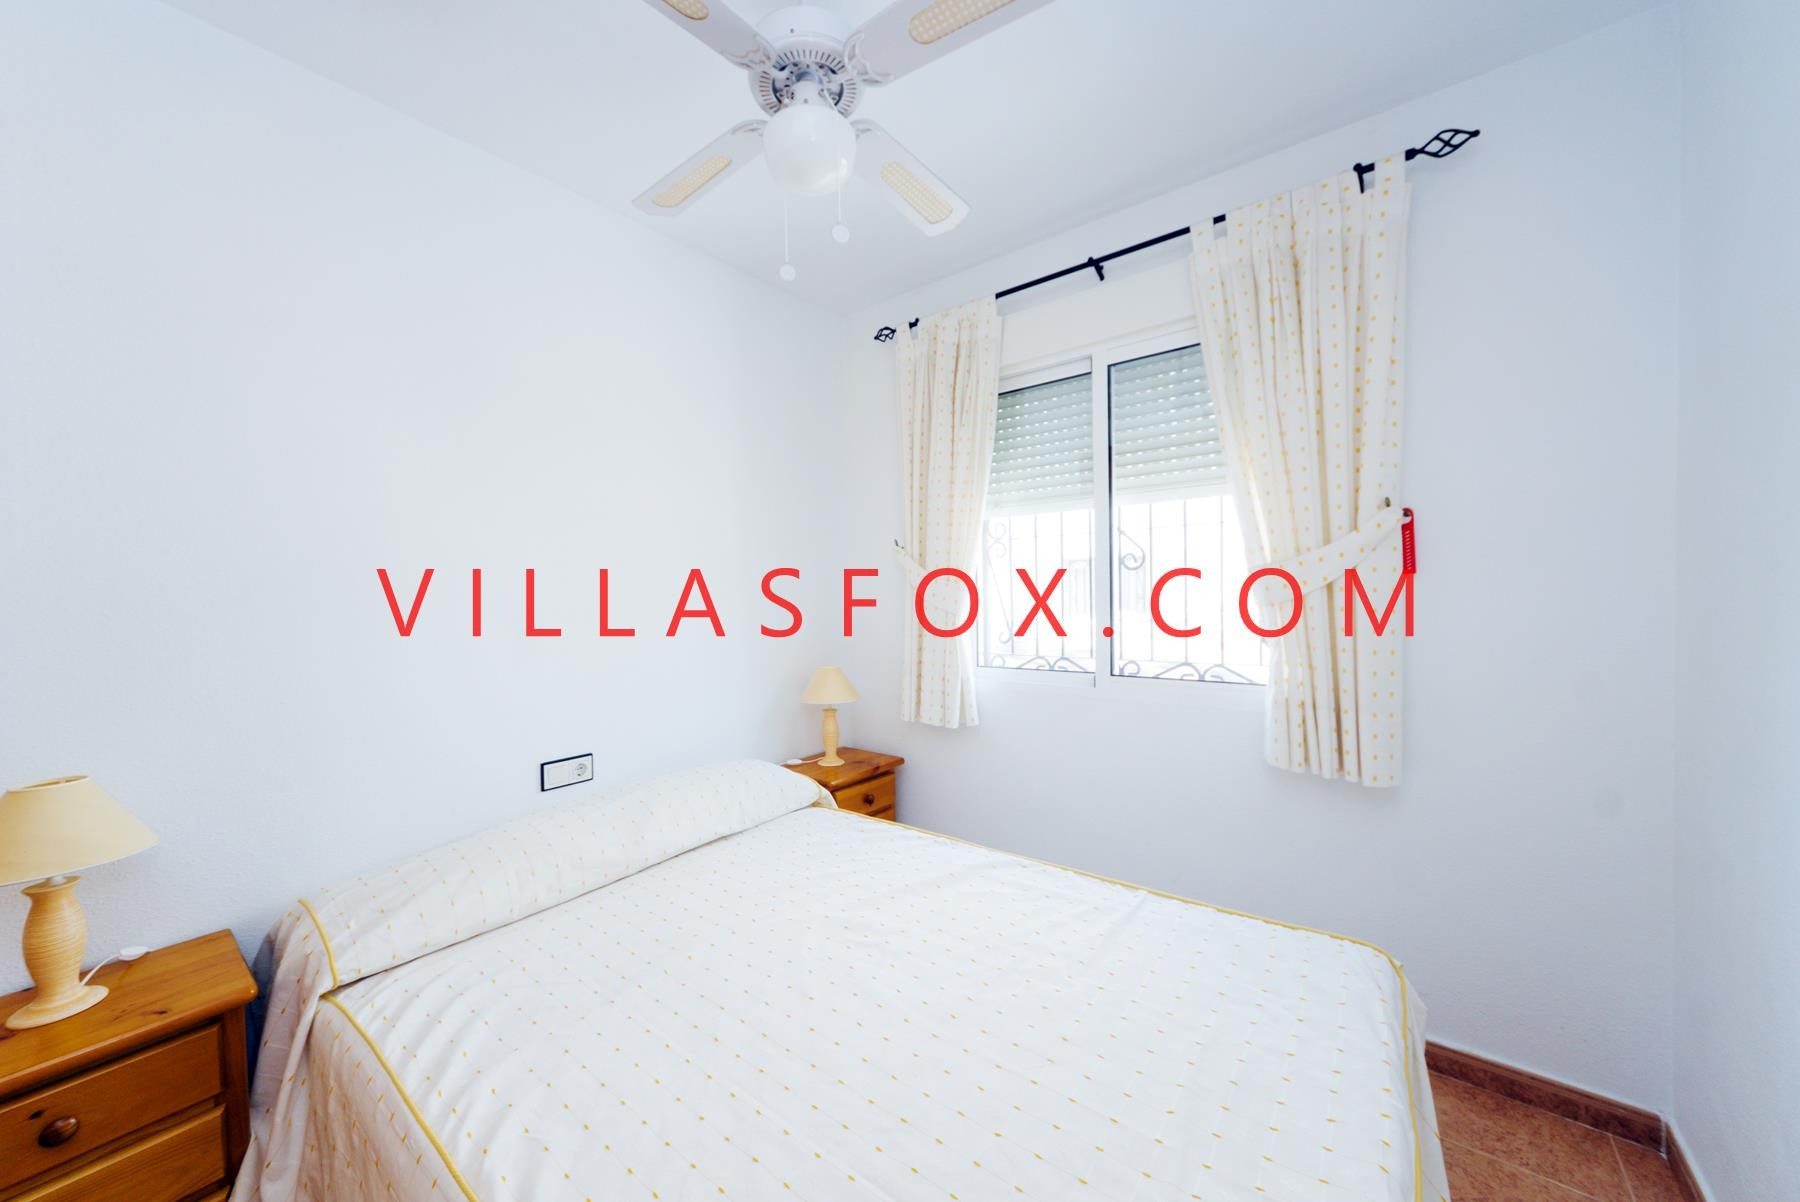 3-bedroom, 2-bathroom quad villa, Dream Hills, Los Altos